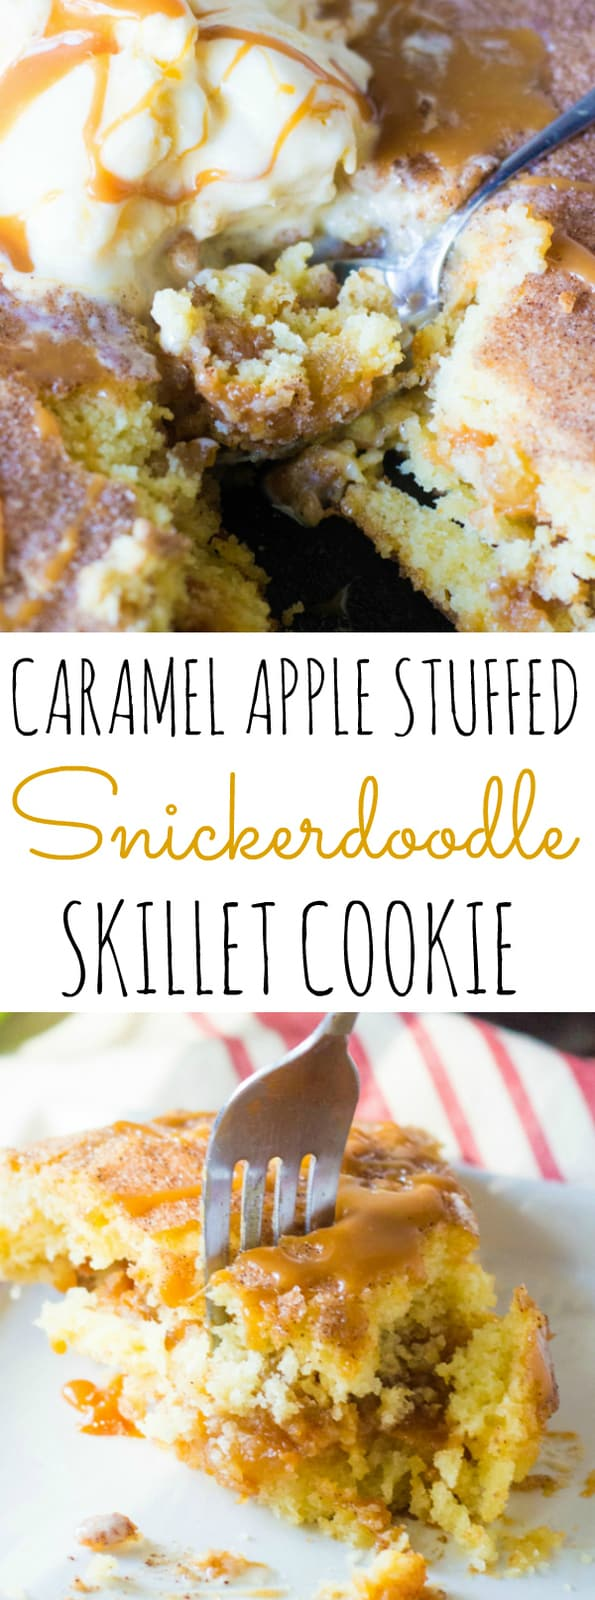 Caramel Apple Stuffed Snickerdoodle Skillet Cookie collage with words in center